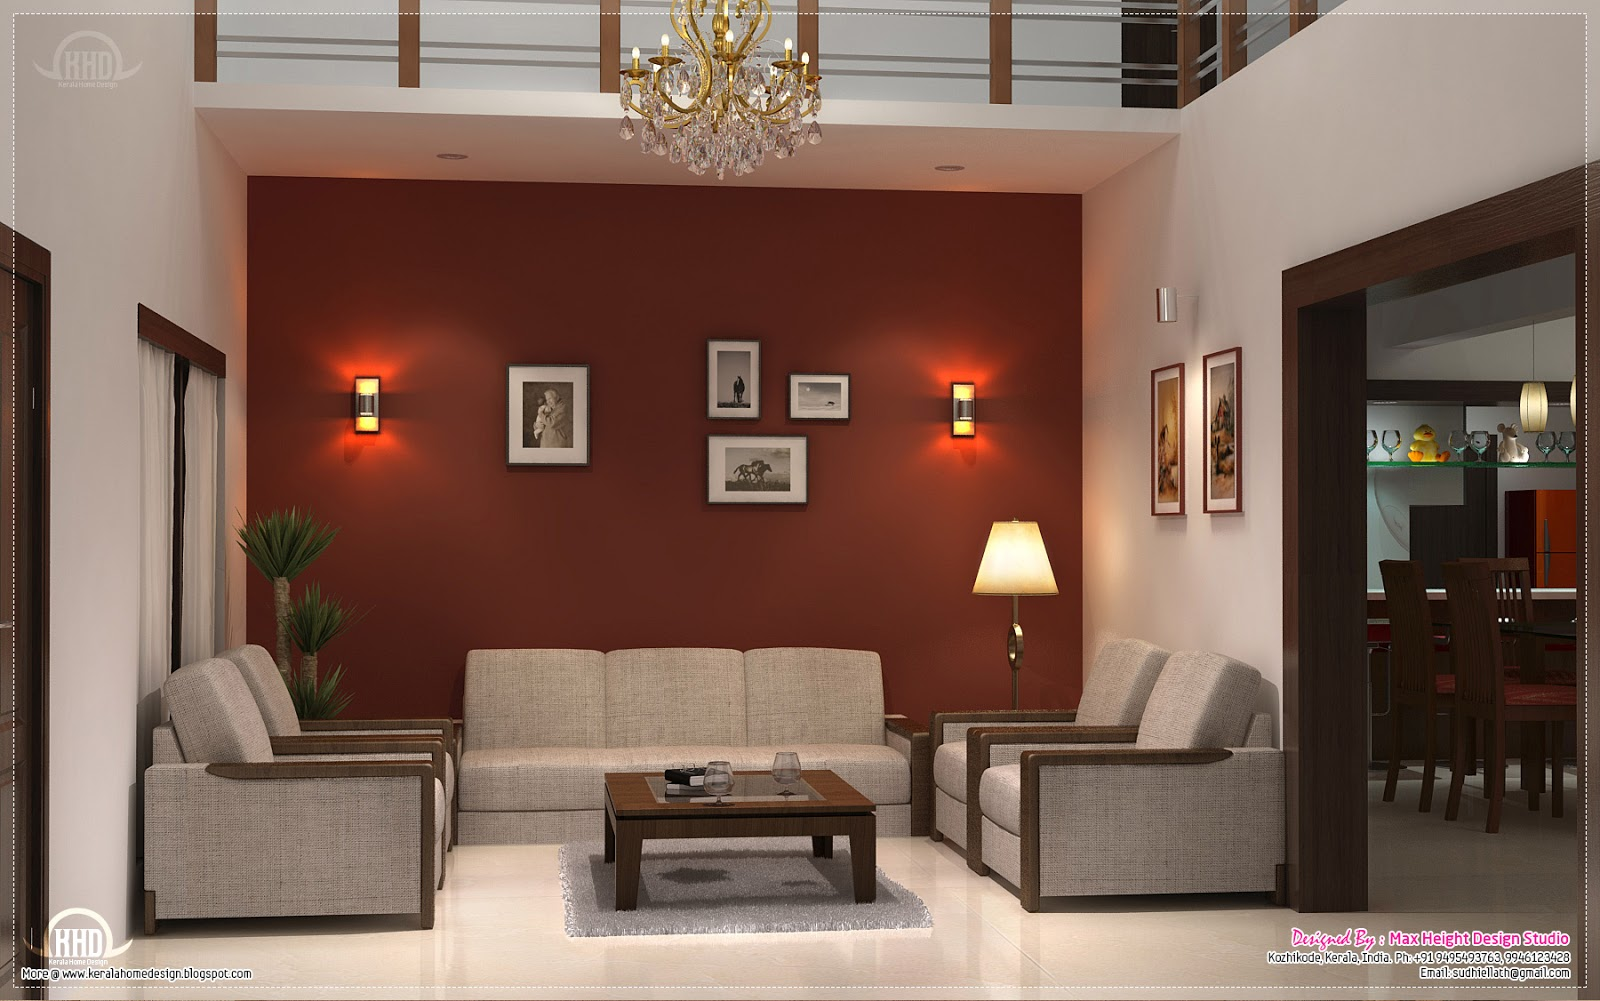 Home interior design ideas kerala home design and floor - House interior design pictures living room ...